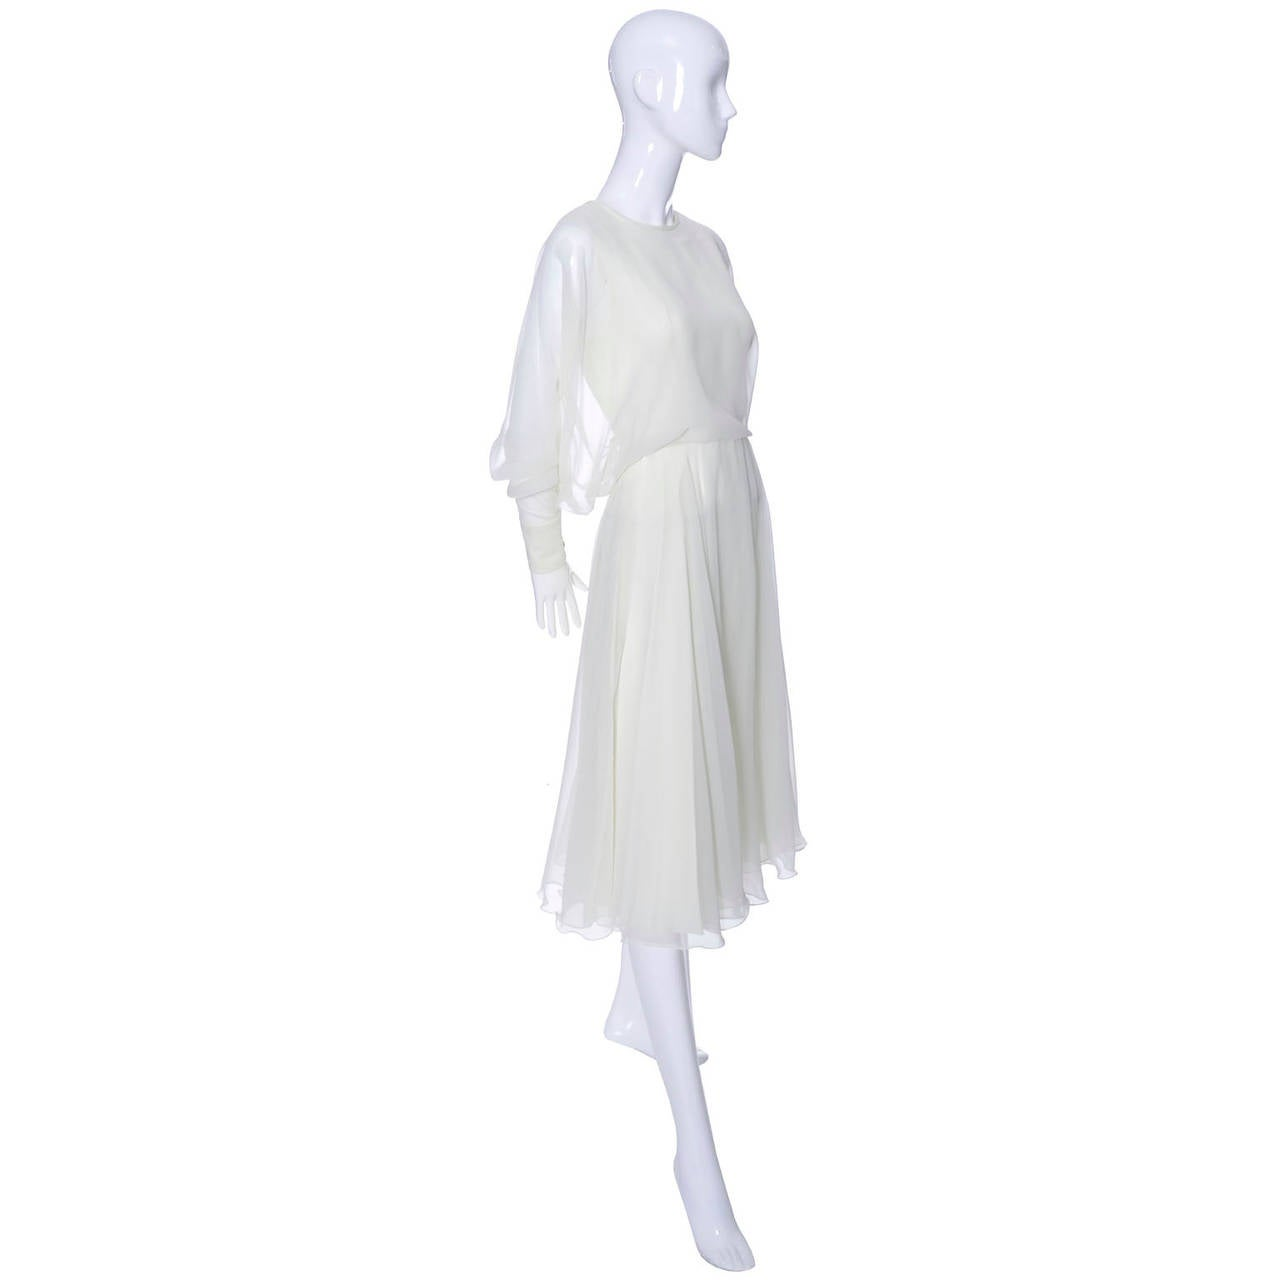 This is a 1970's dreamy ivory chiffon vintage dress with the Jean Varon label. Jean Varon was a label that was designed by John Bates, who supposedly chose the name because he thought a french name would be more successful in the fashion industry